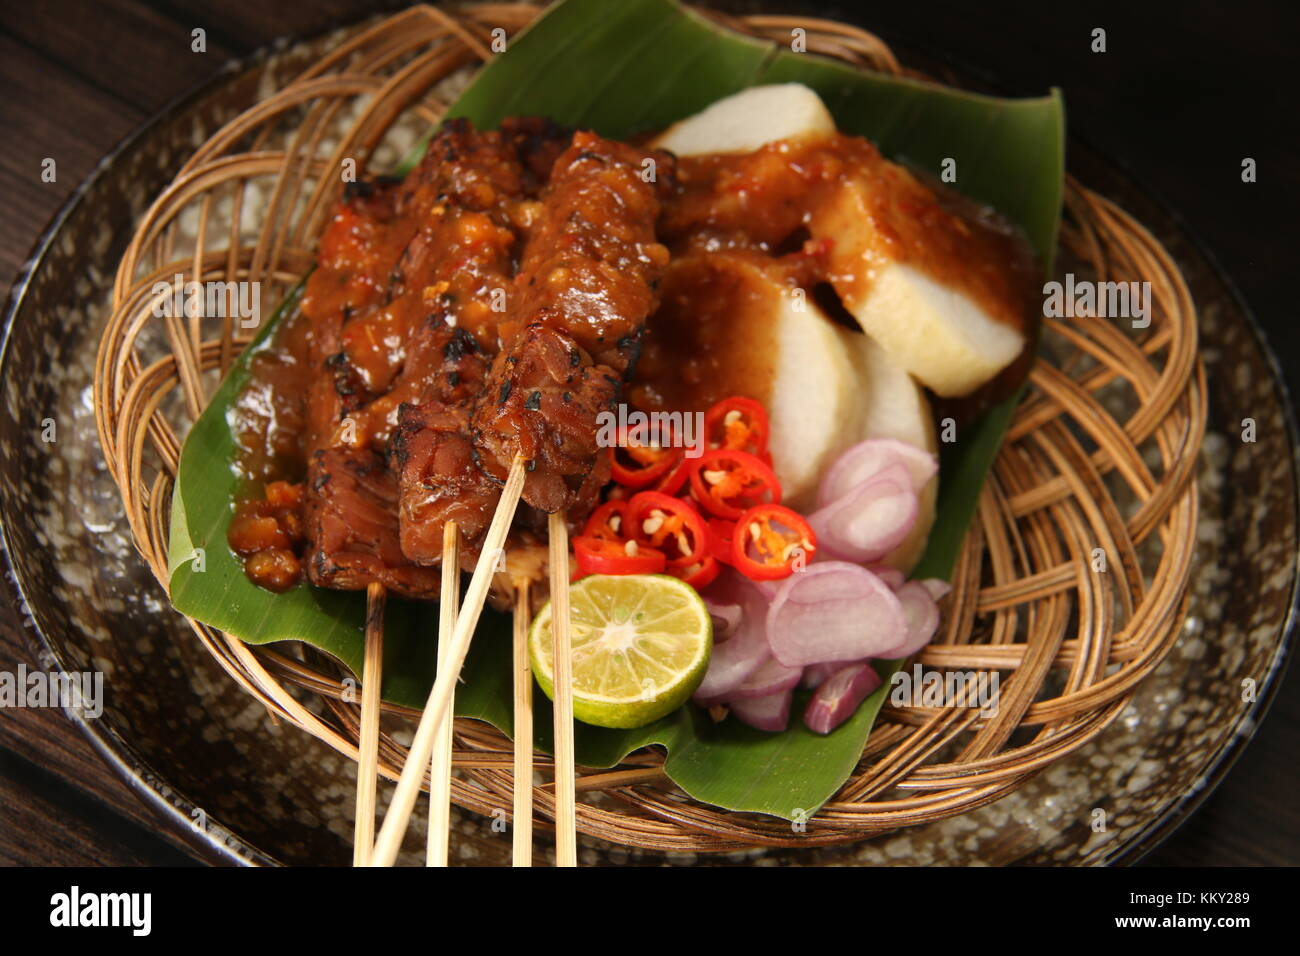 Sate Kere, the Popular Tempeh Satay from Solo / Surakarta, Central Java - Stock Image